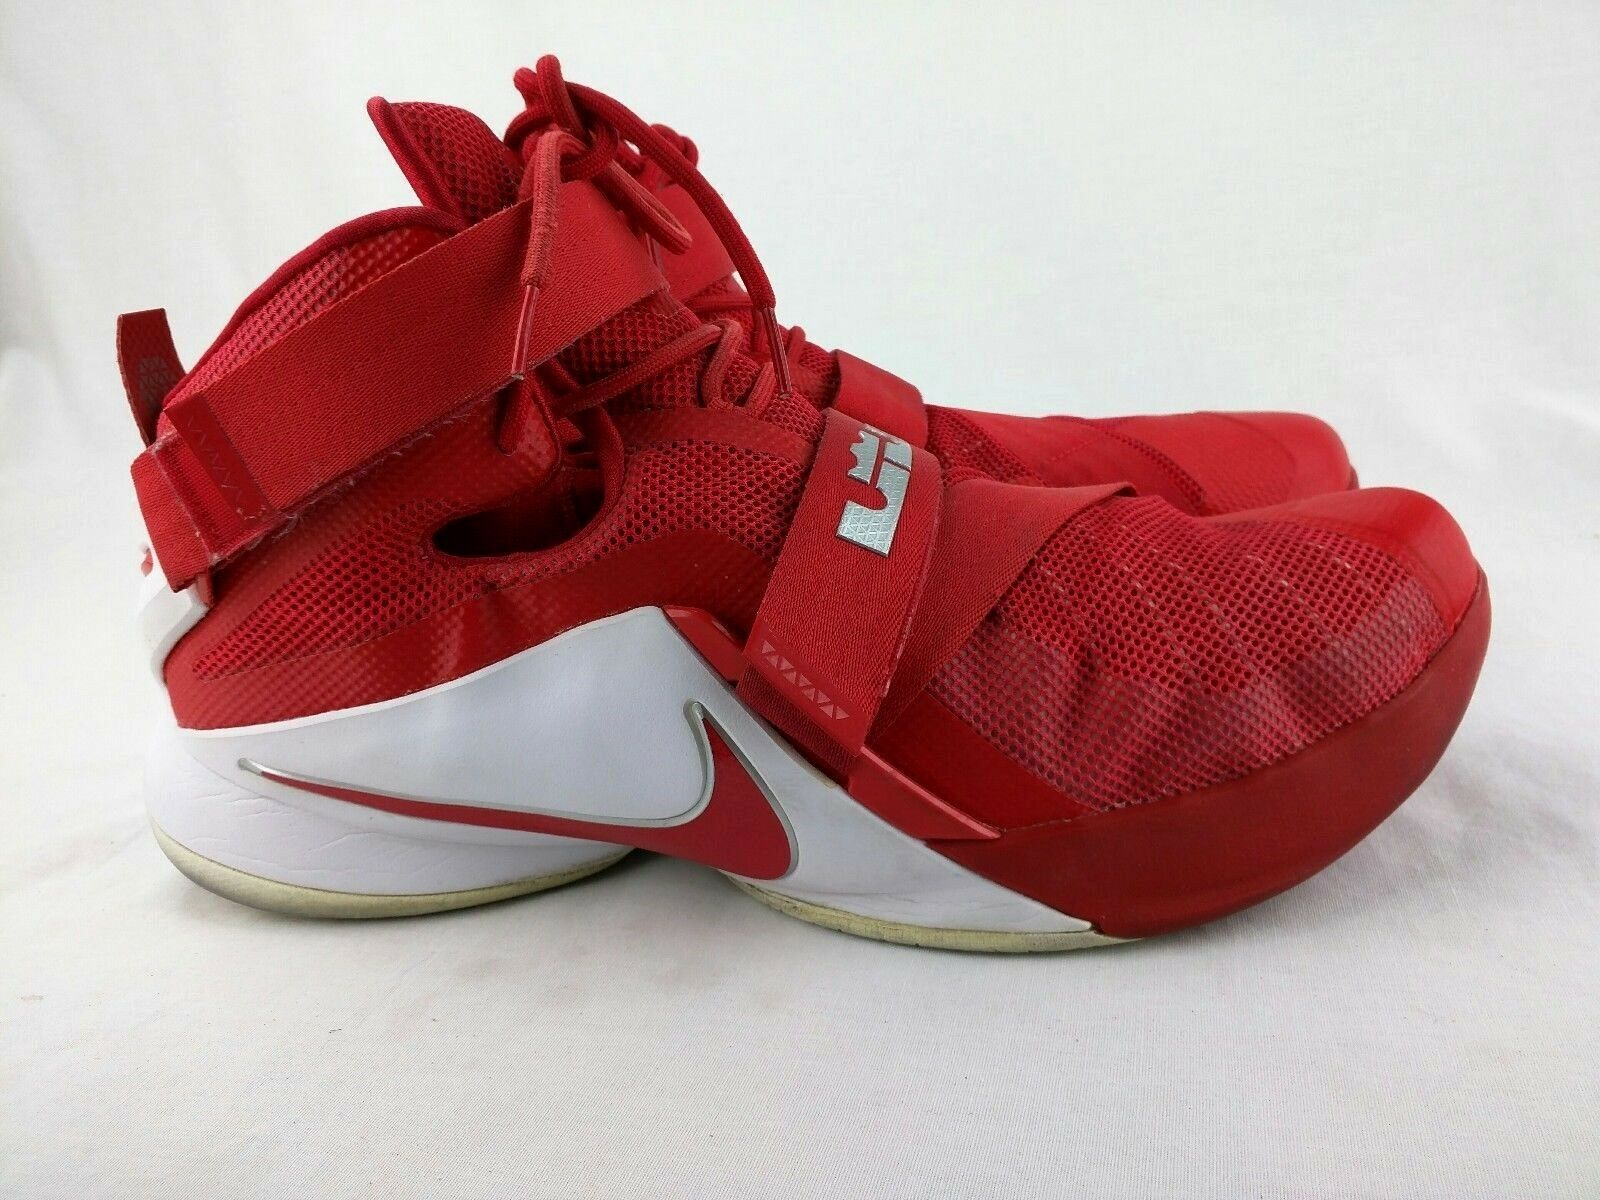 Nike Lebron Soldier IX  Basketball shoes Men's Sz 17 Exell.Cond.